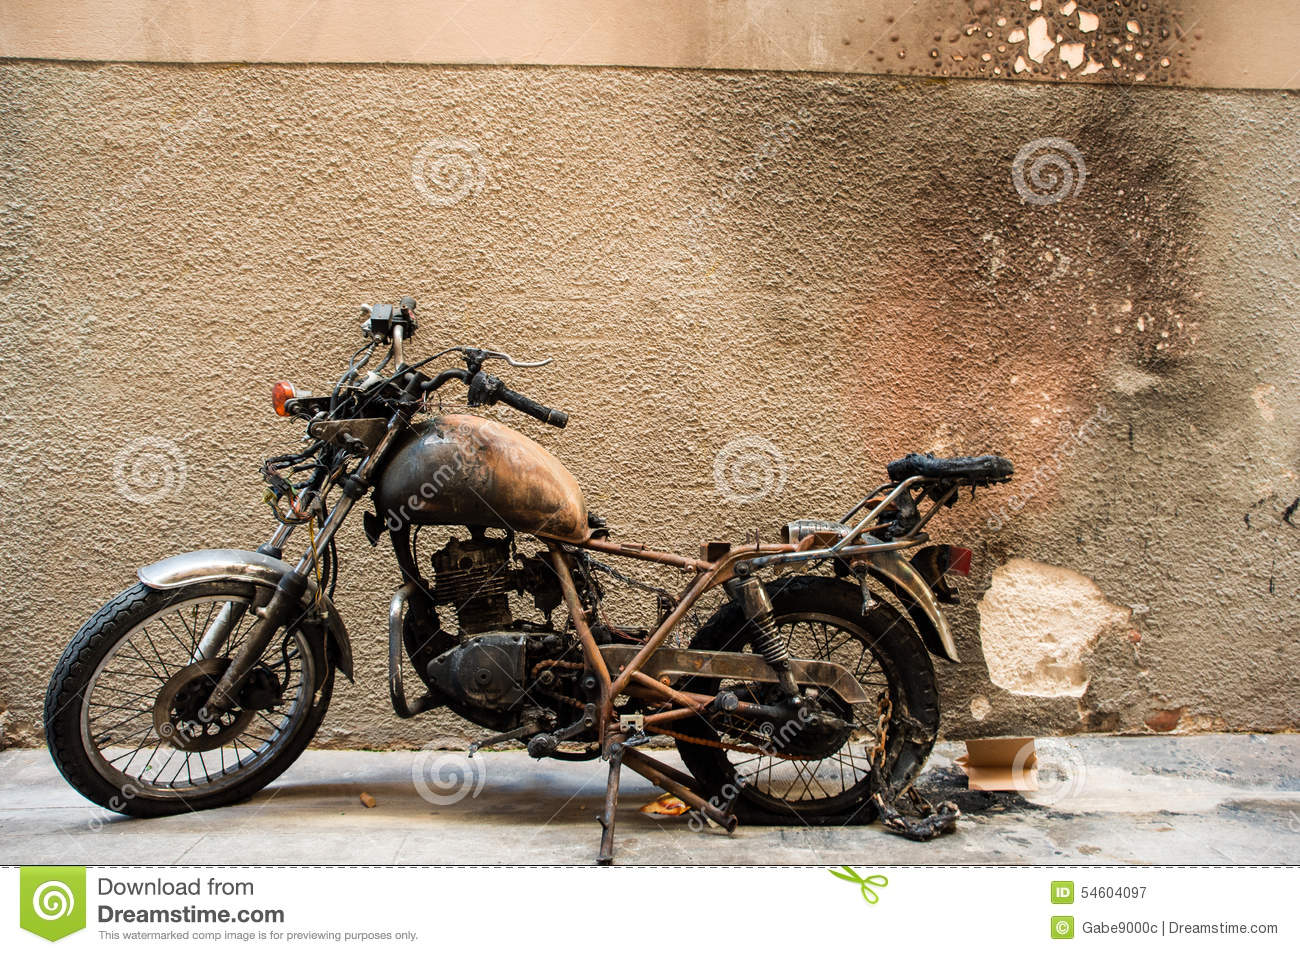 Renew Motorcycle Insurance